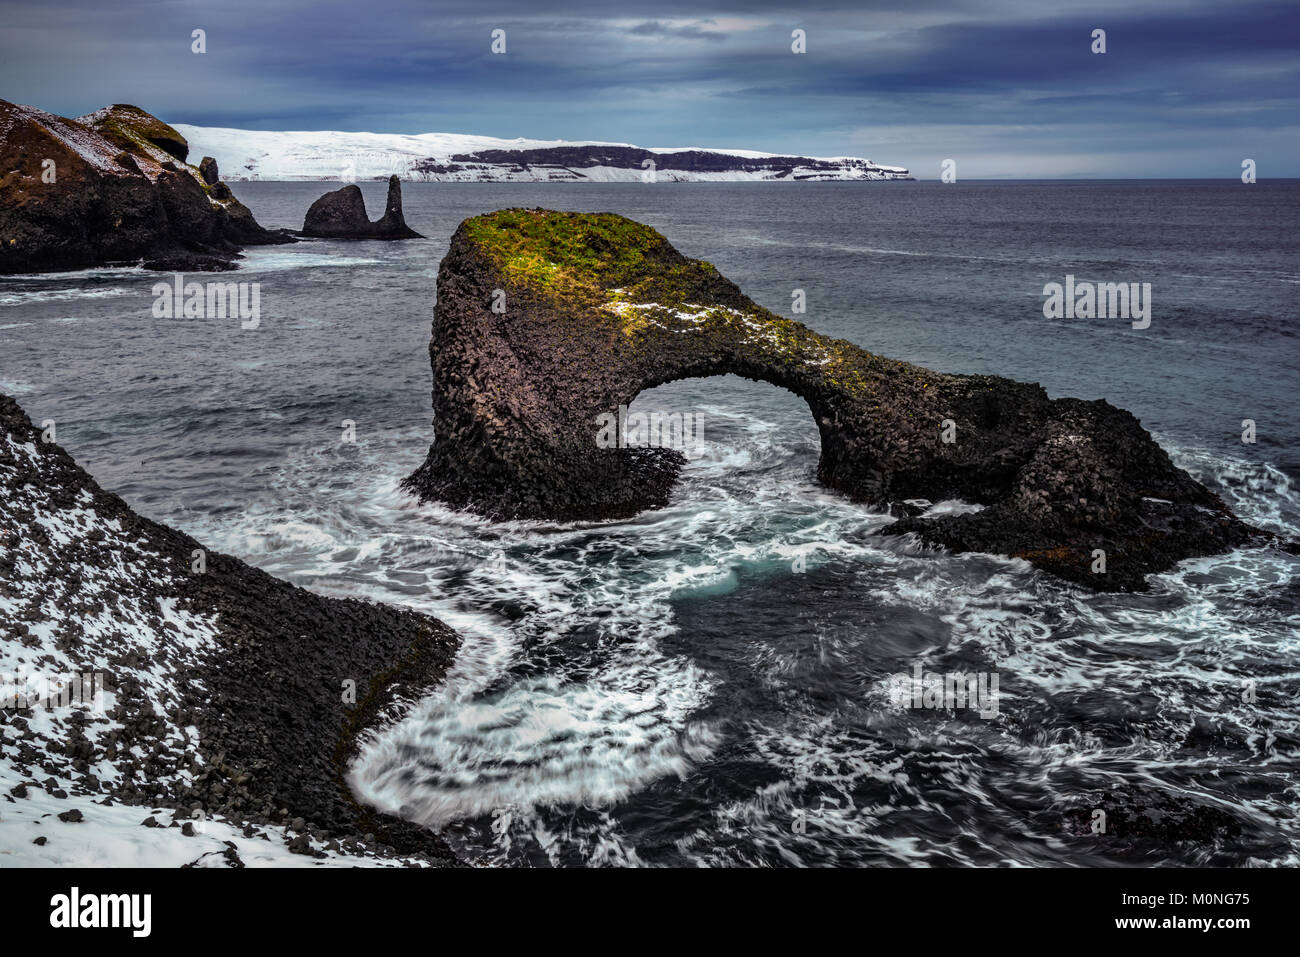 Basalt formations of Raudanes peninsula in Iceland - Stock Image